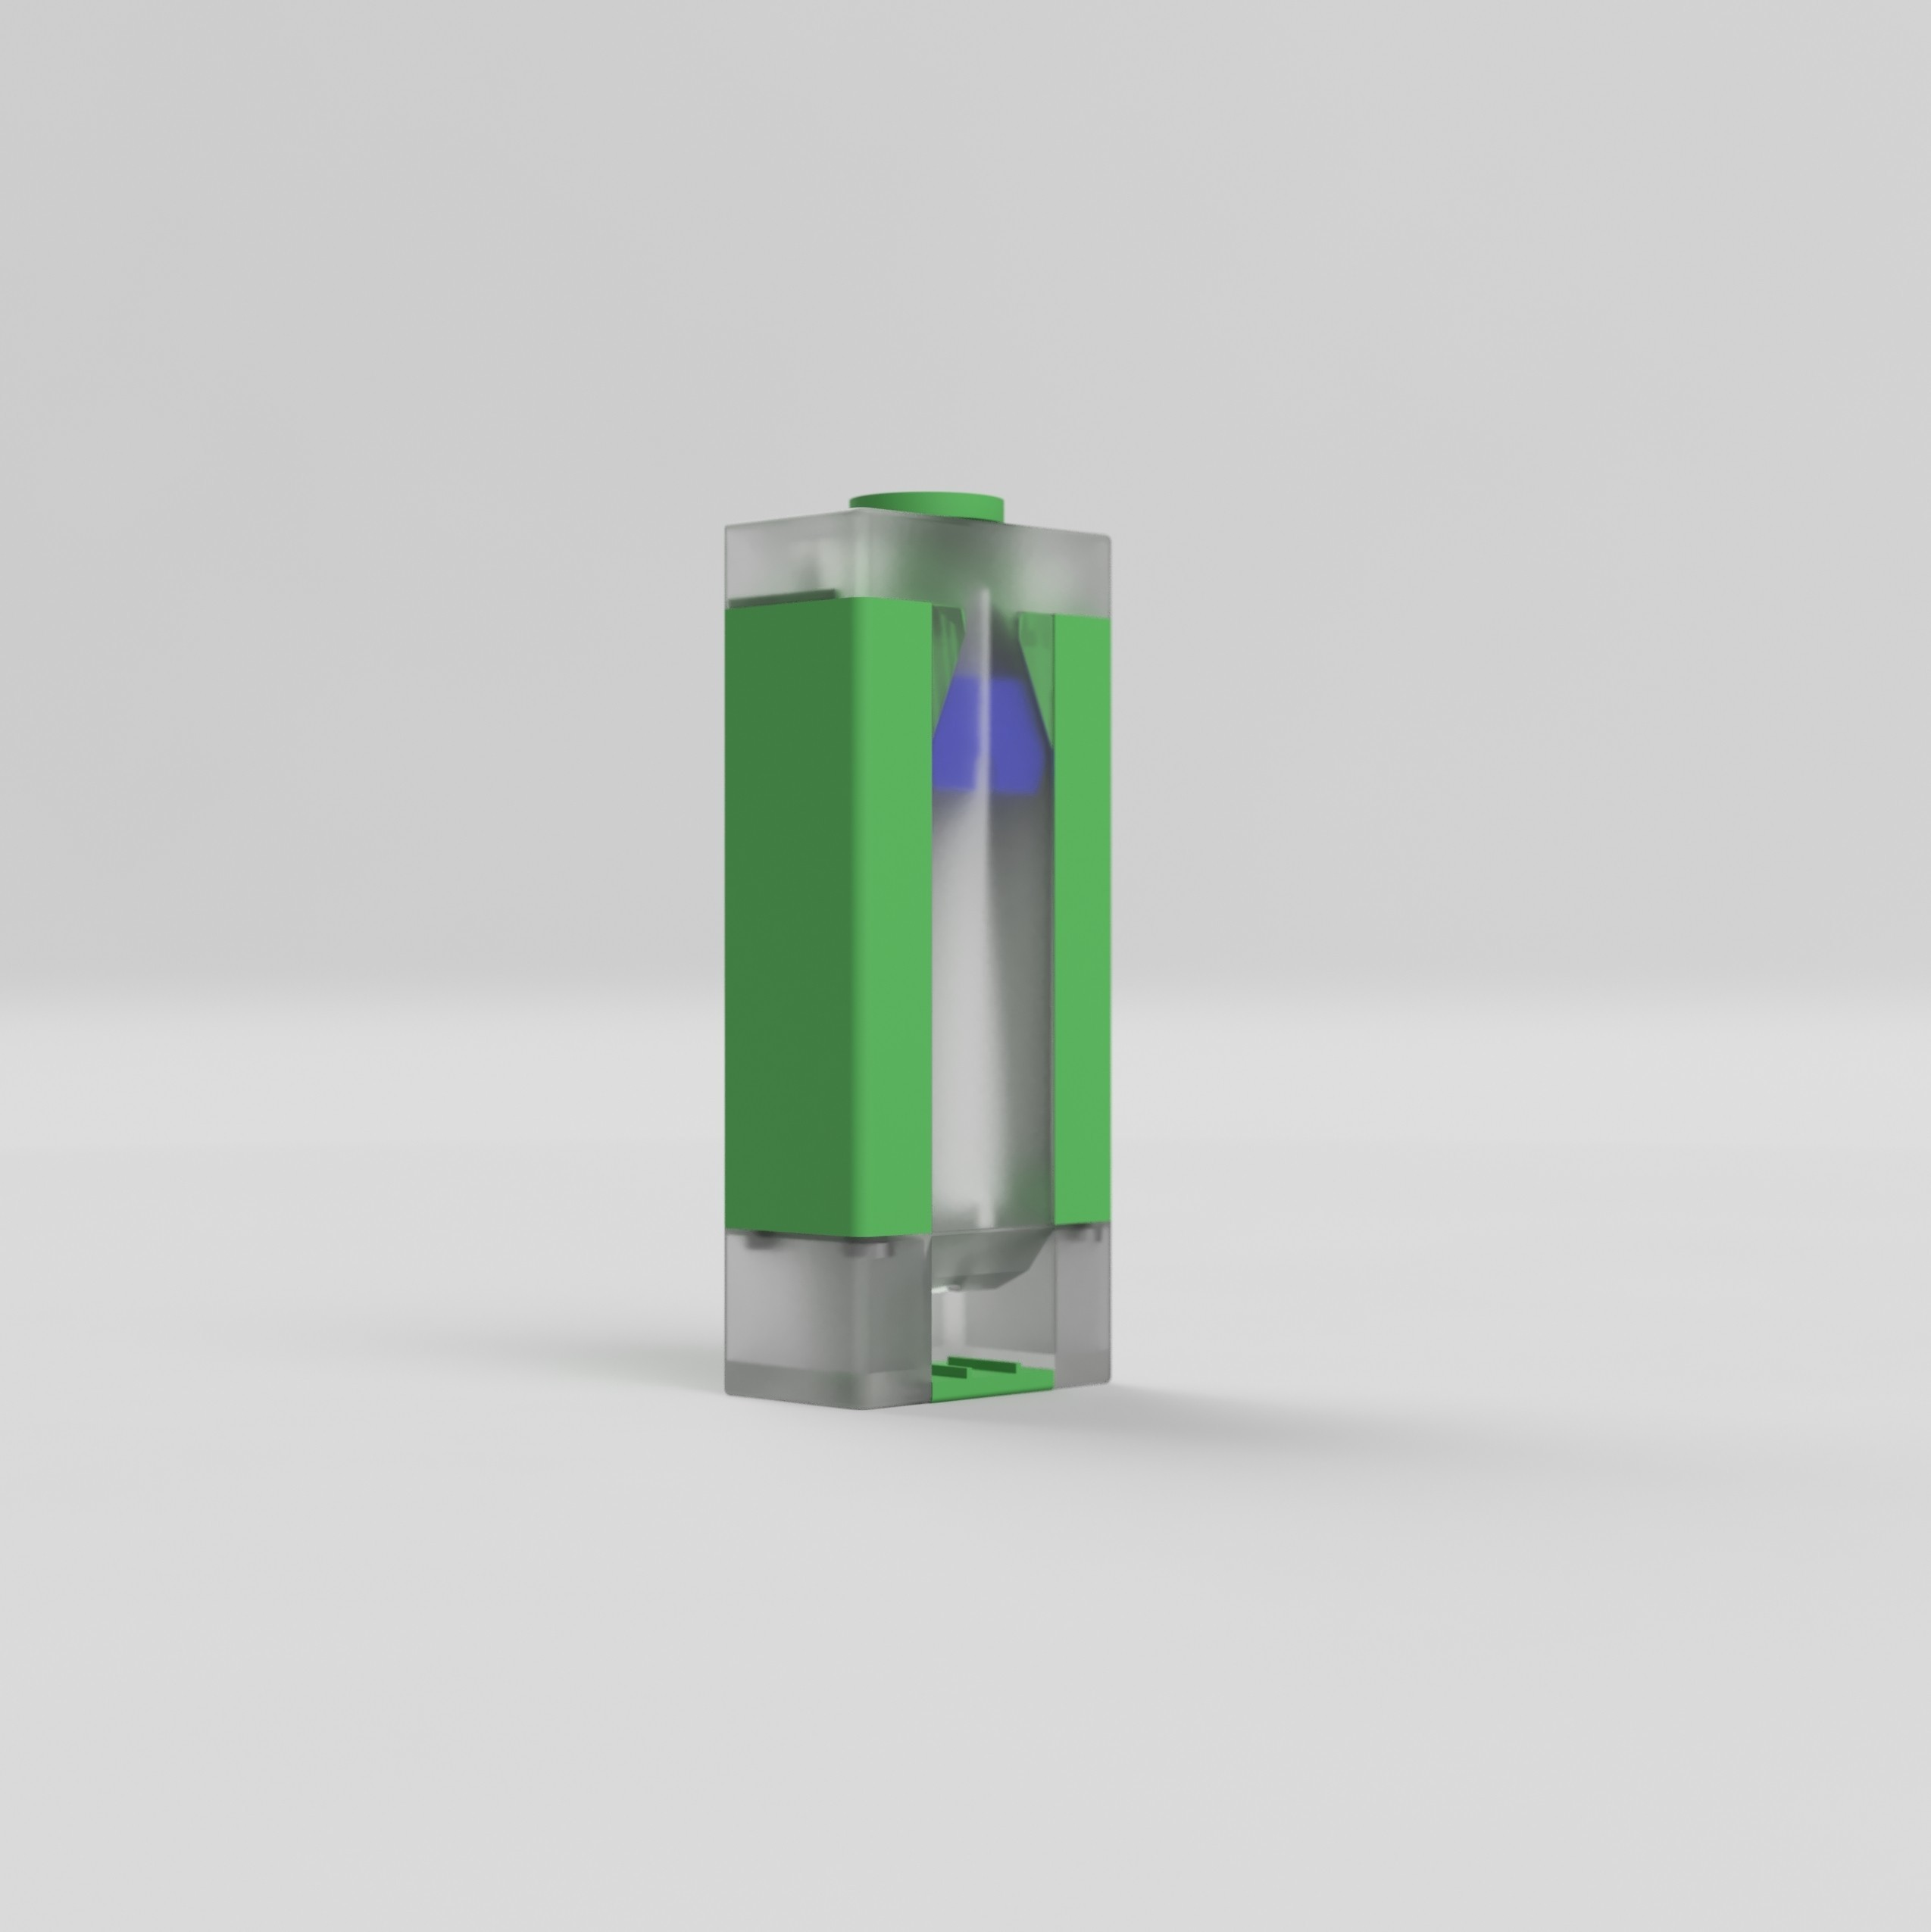 Assy_2017-Nov-28_06-36-23PM-000_CustomizedView13325155747_png.jpg Download free STL file Toothpaste Dispenser • 3D print model, Anthony_SA